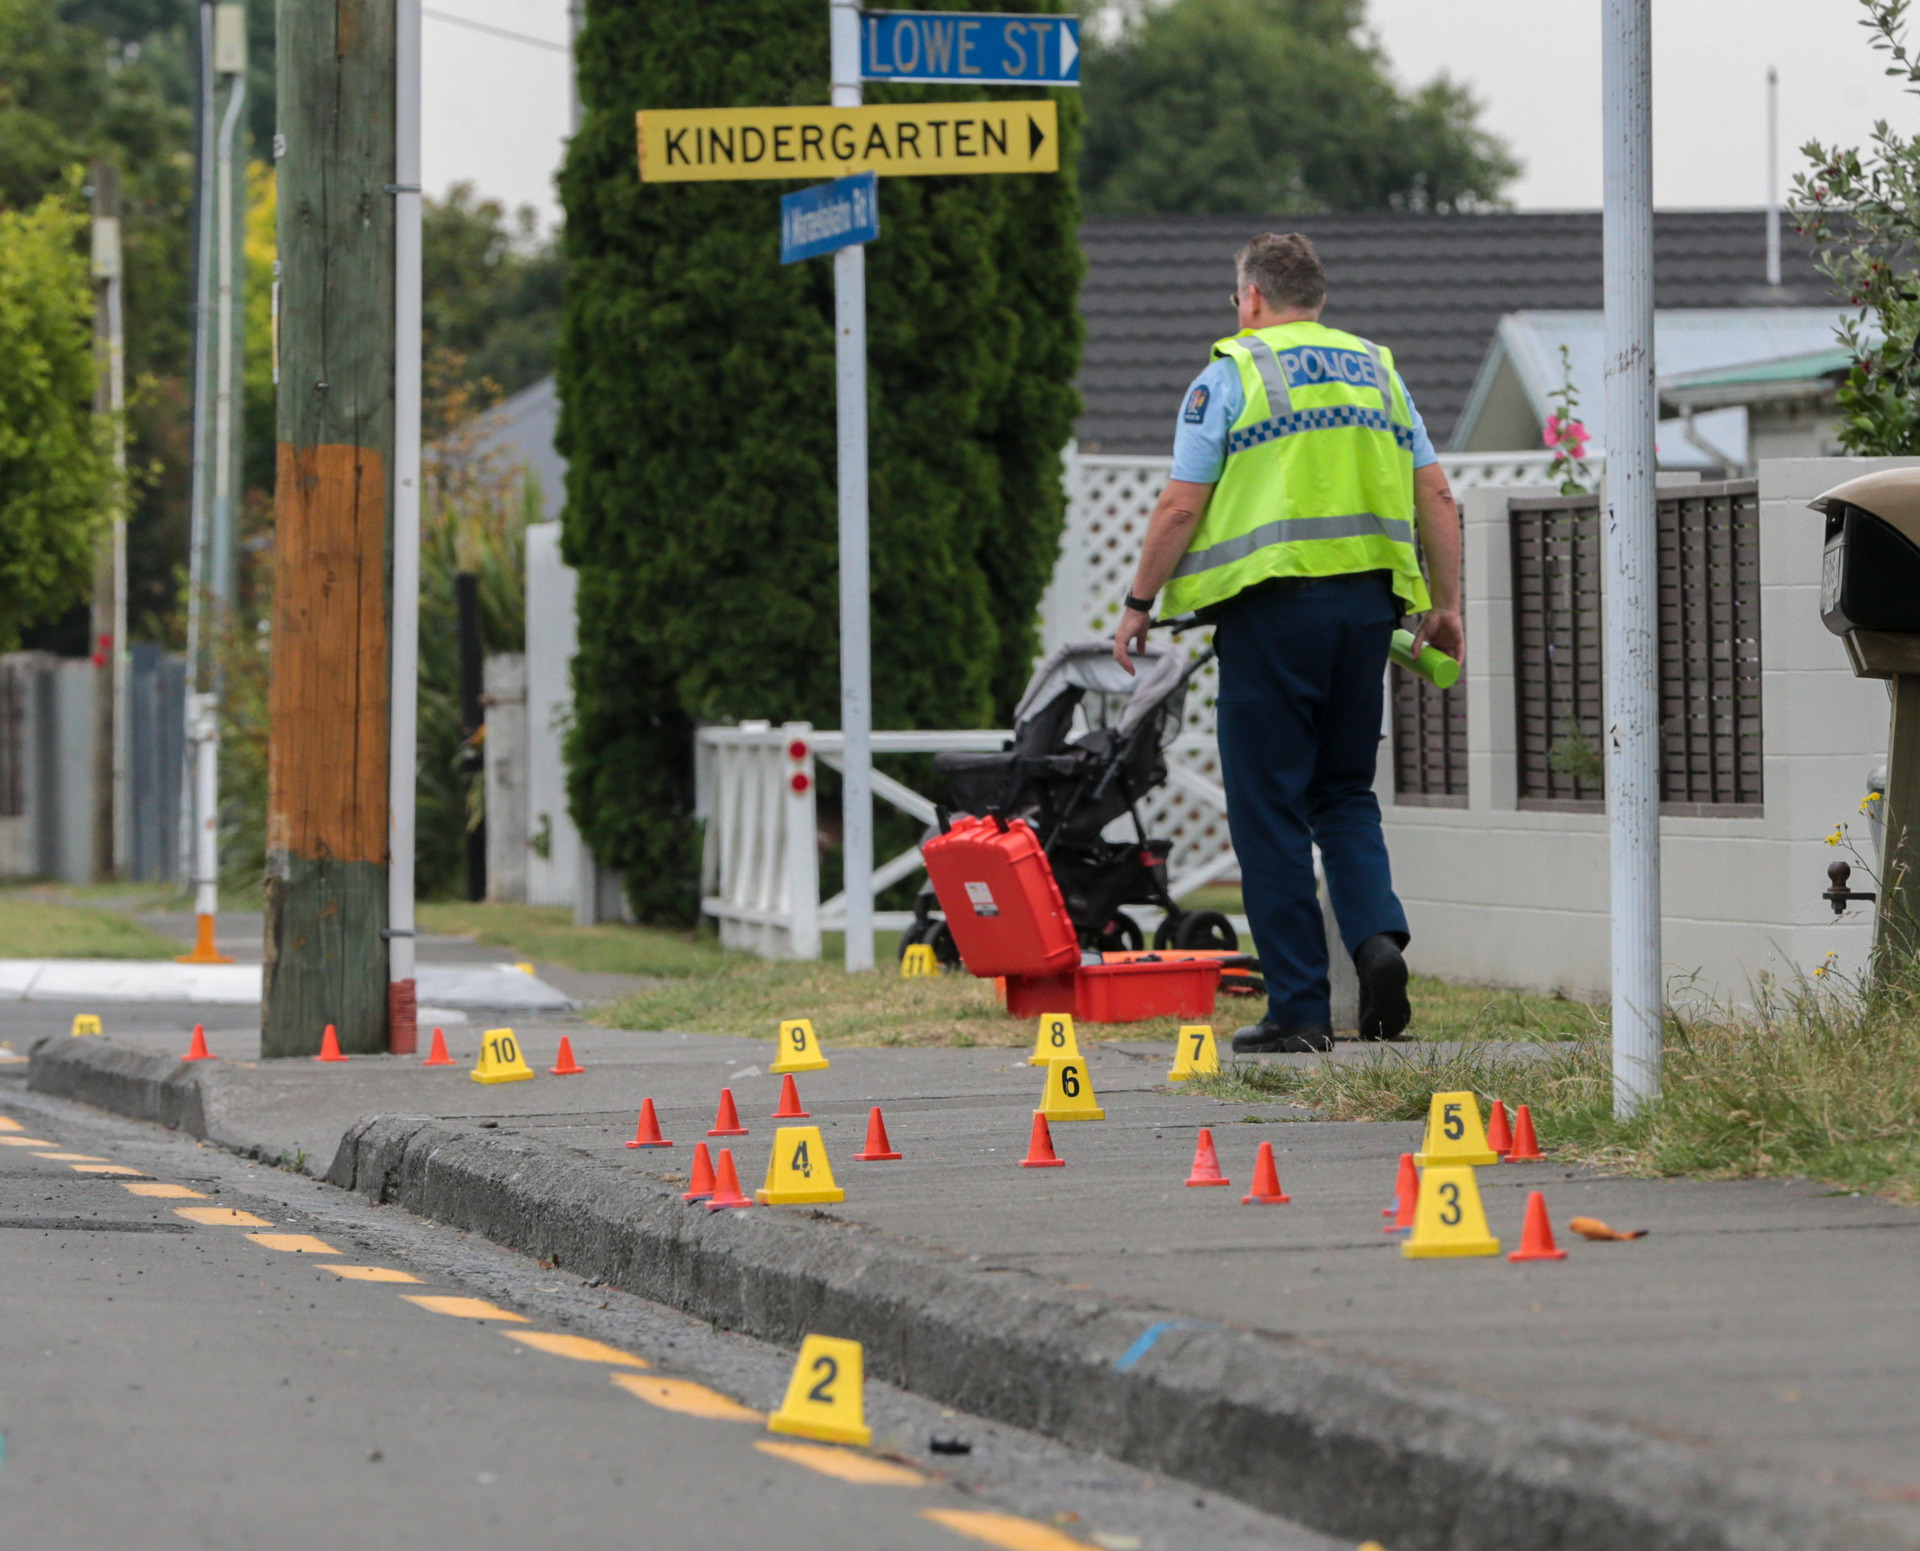 Hastings hit-and-run: Man remains critical after saving toddler's life